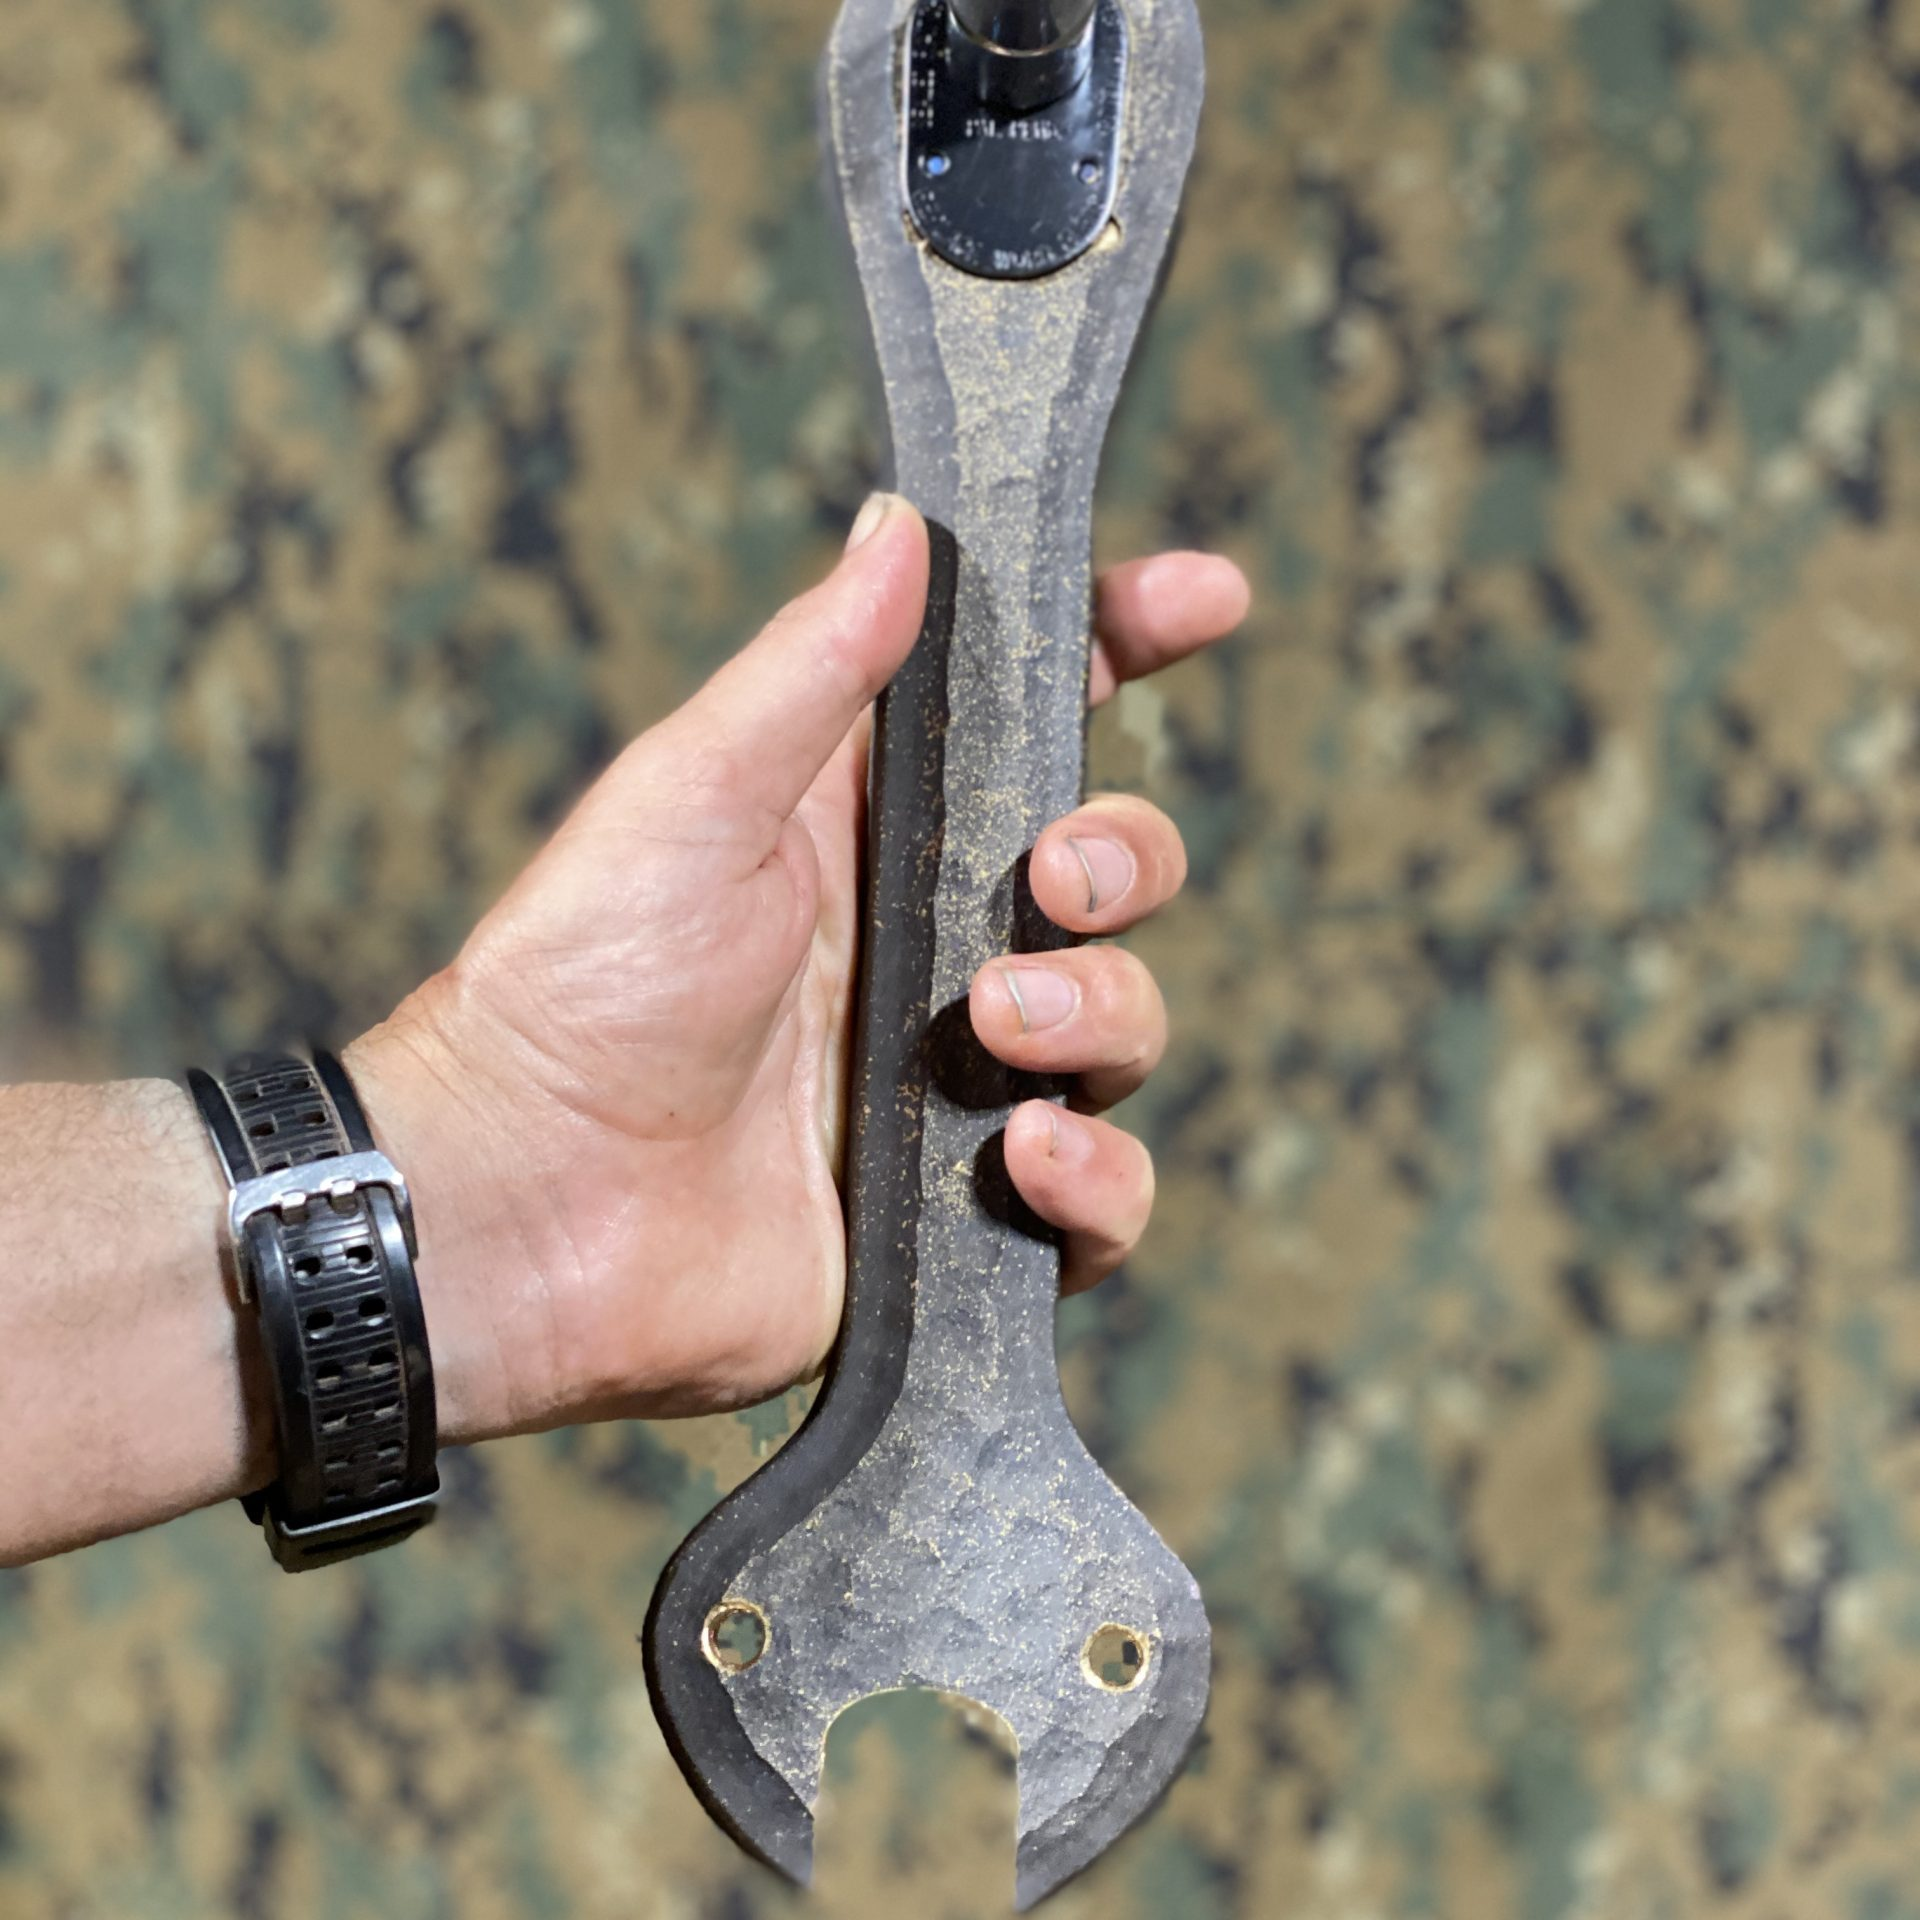 3D printed Gunner's ratchet used by Defence in the service of the M242 Australian Light Armoured Vehicle Machine Gun